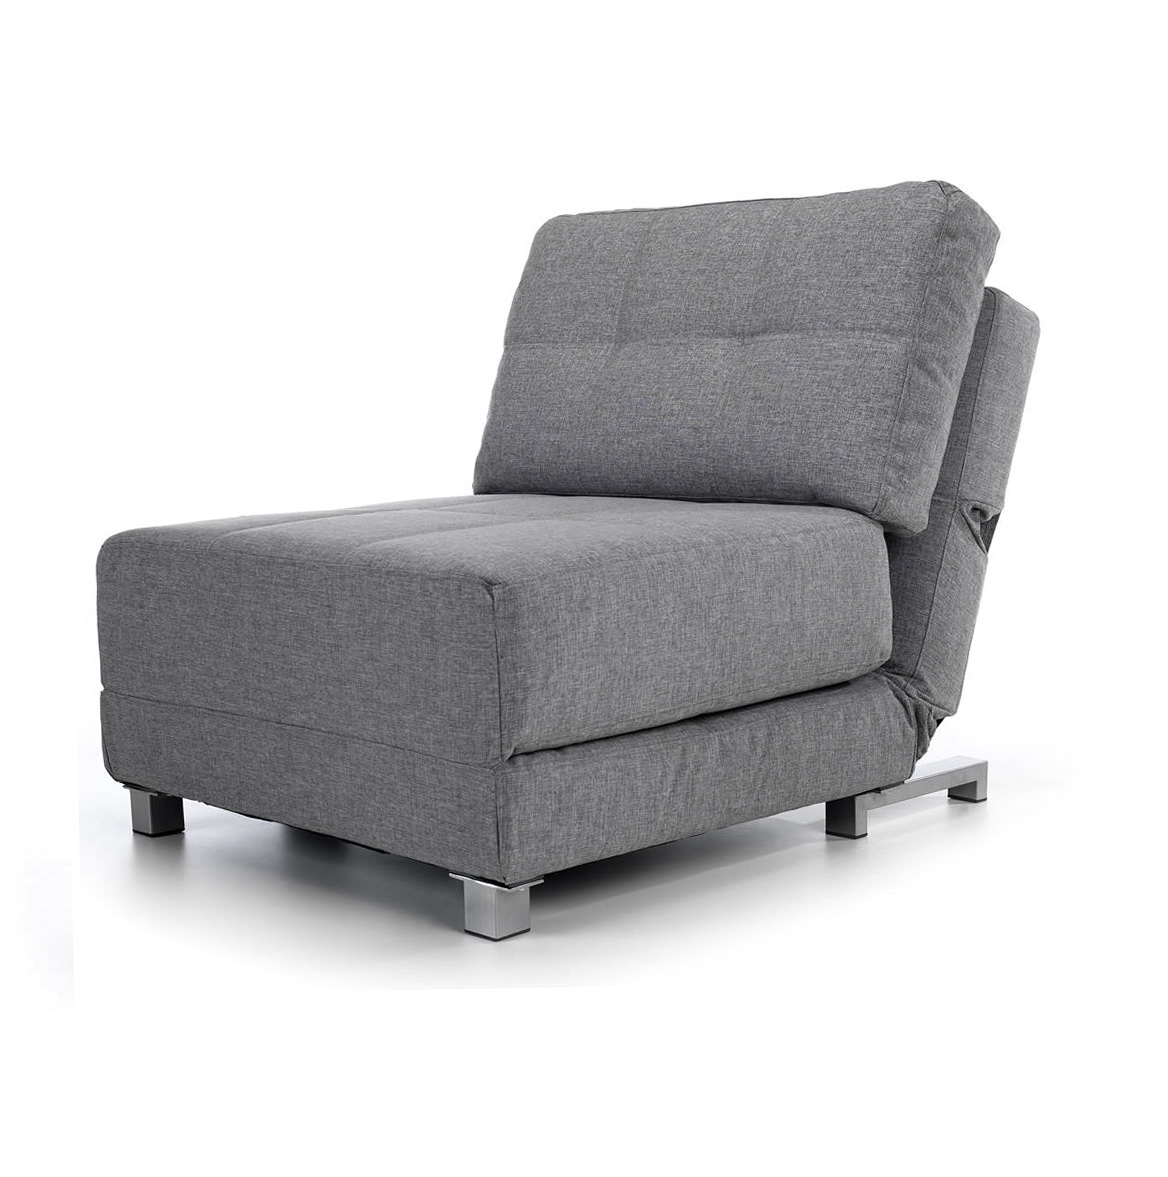 Futon Chair Bed Uk